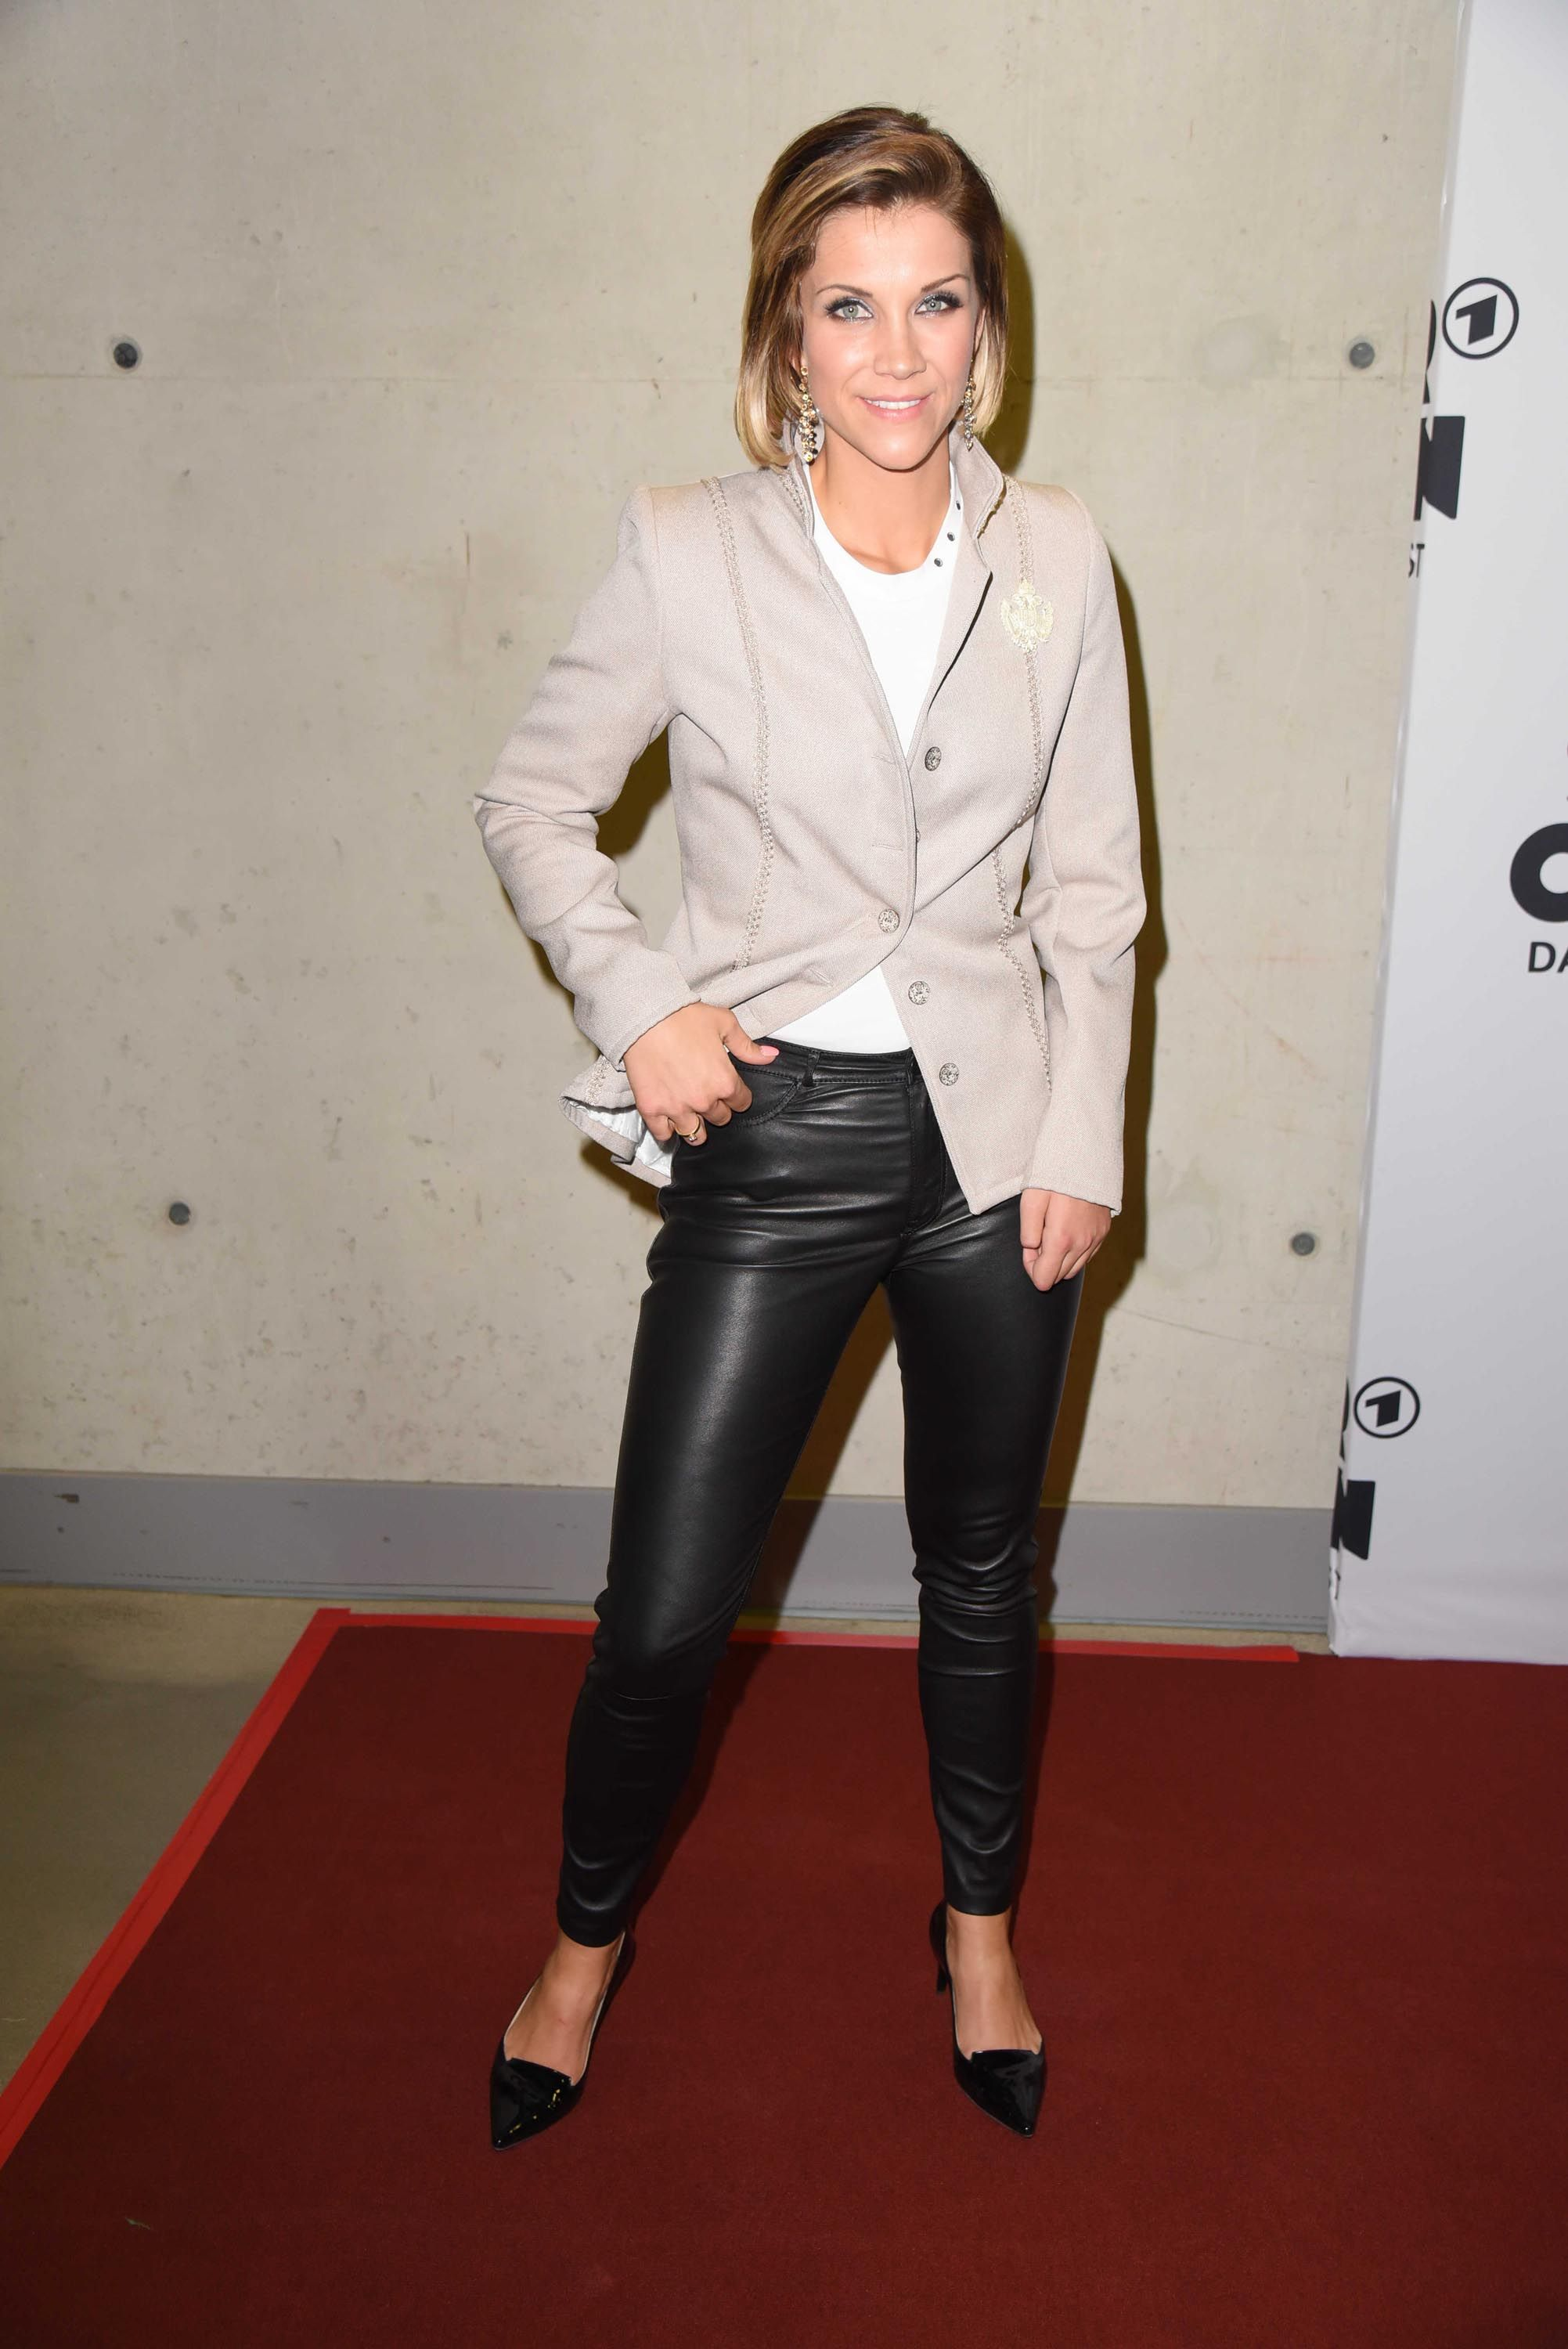 Anna Maria Zimmermann Attends The Schlagercoutdown Black Leather Pants Leather Pants Pants